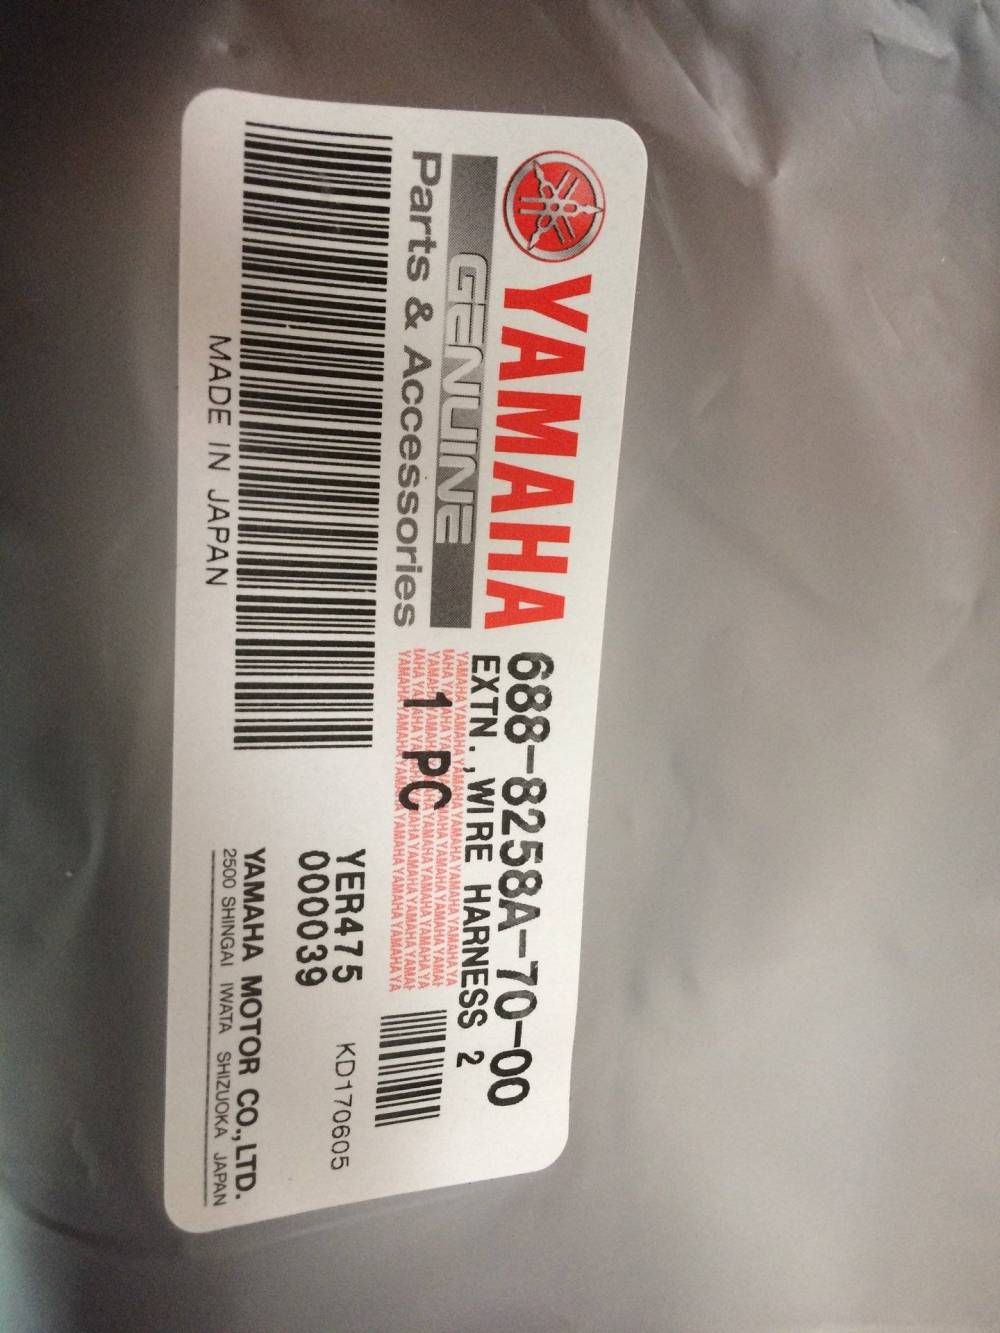 medium resolution of i have a brand new 10 pin 23 yamaha wire harness part number 688 8258a 70 00 this is the cable that connects the yamaha outboards to the key switch and